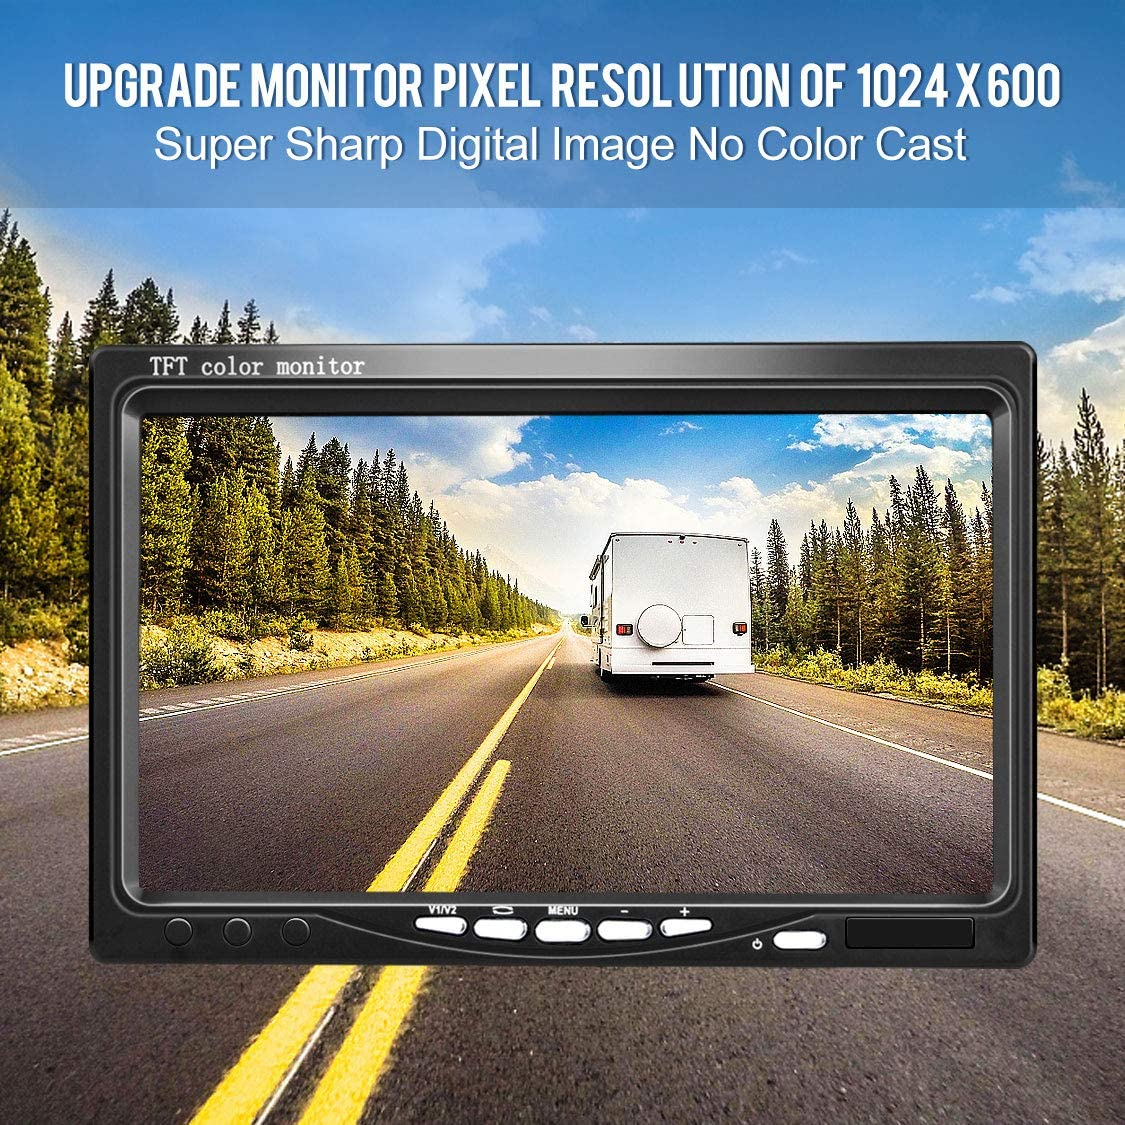 DVKNM Upgrade Backup Camera Monitor Kit,1024X600 HD,IP69 Waterproof Rearview Reversing Rear View Camera 7 LCD Reversing Monitor Truck Semi-Trailer Box Truck RV HD Transmission, Four-pin TZ101